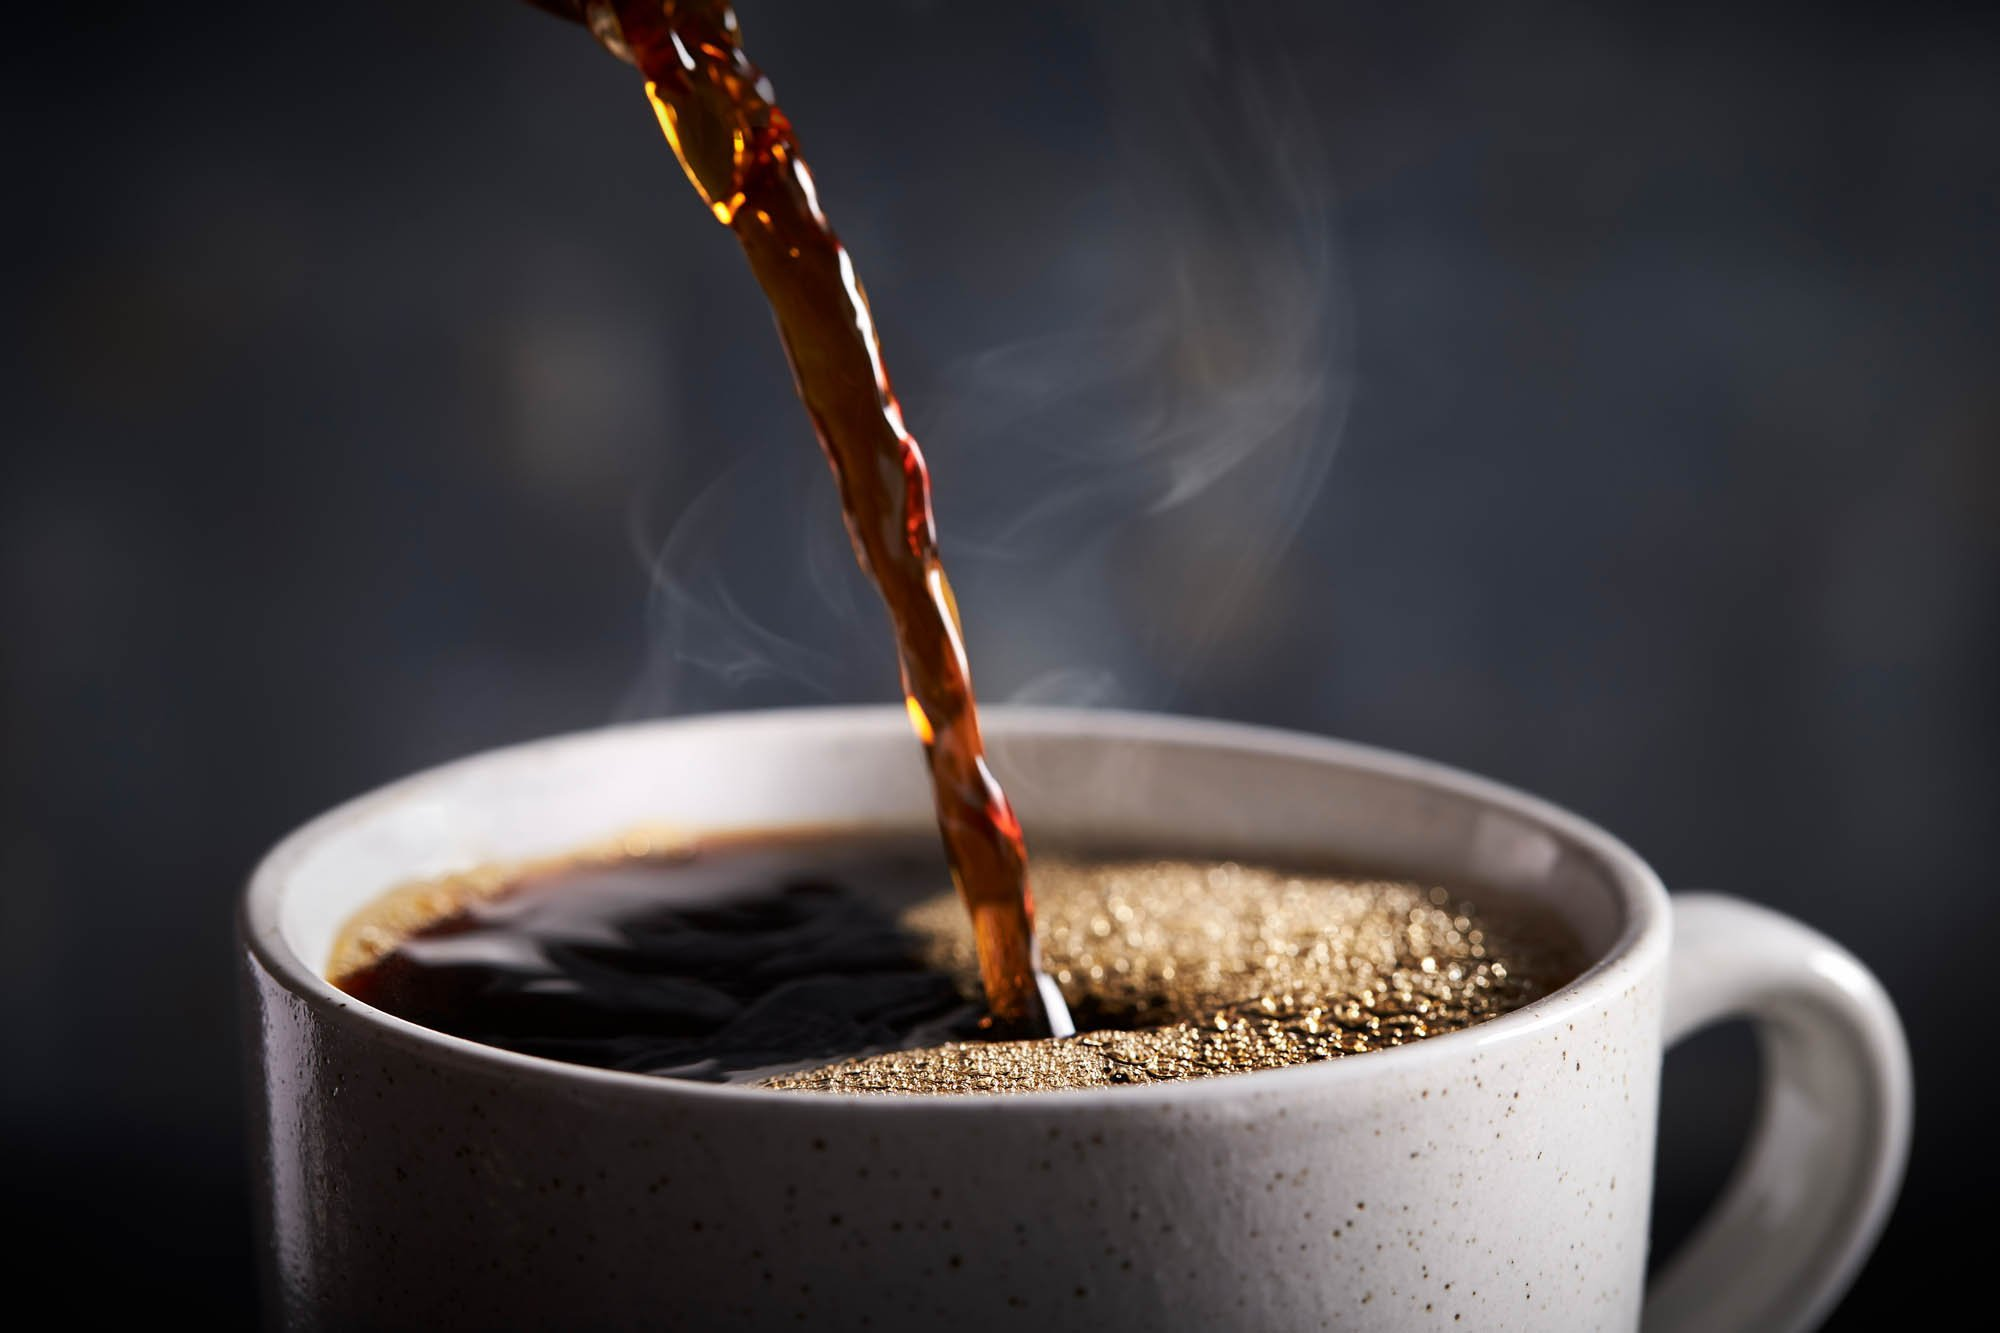 Coffee cup fast motion photography pouring